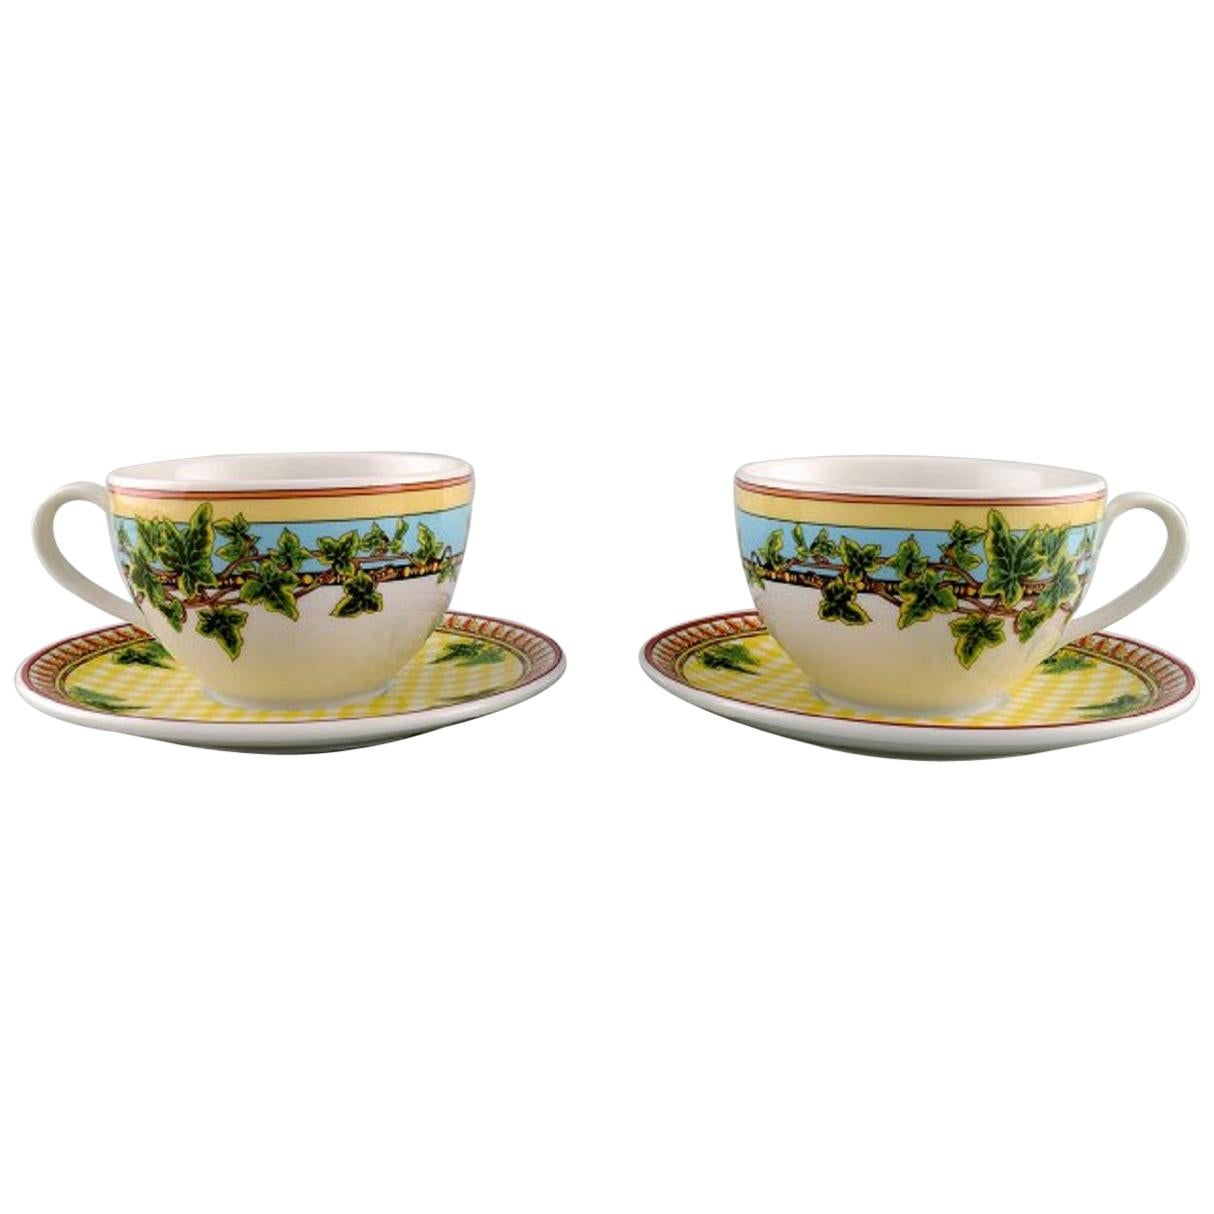 """Gianni Versace for Rosenthal, Two """"Ivy Leaves Passion"""" Cups with Saucers"""